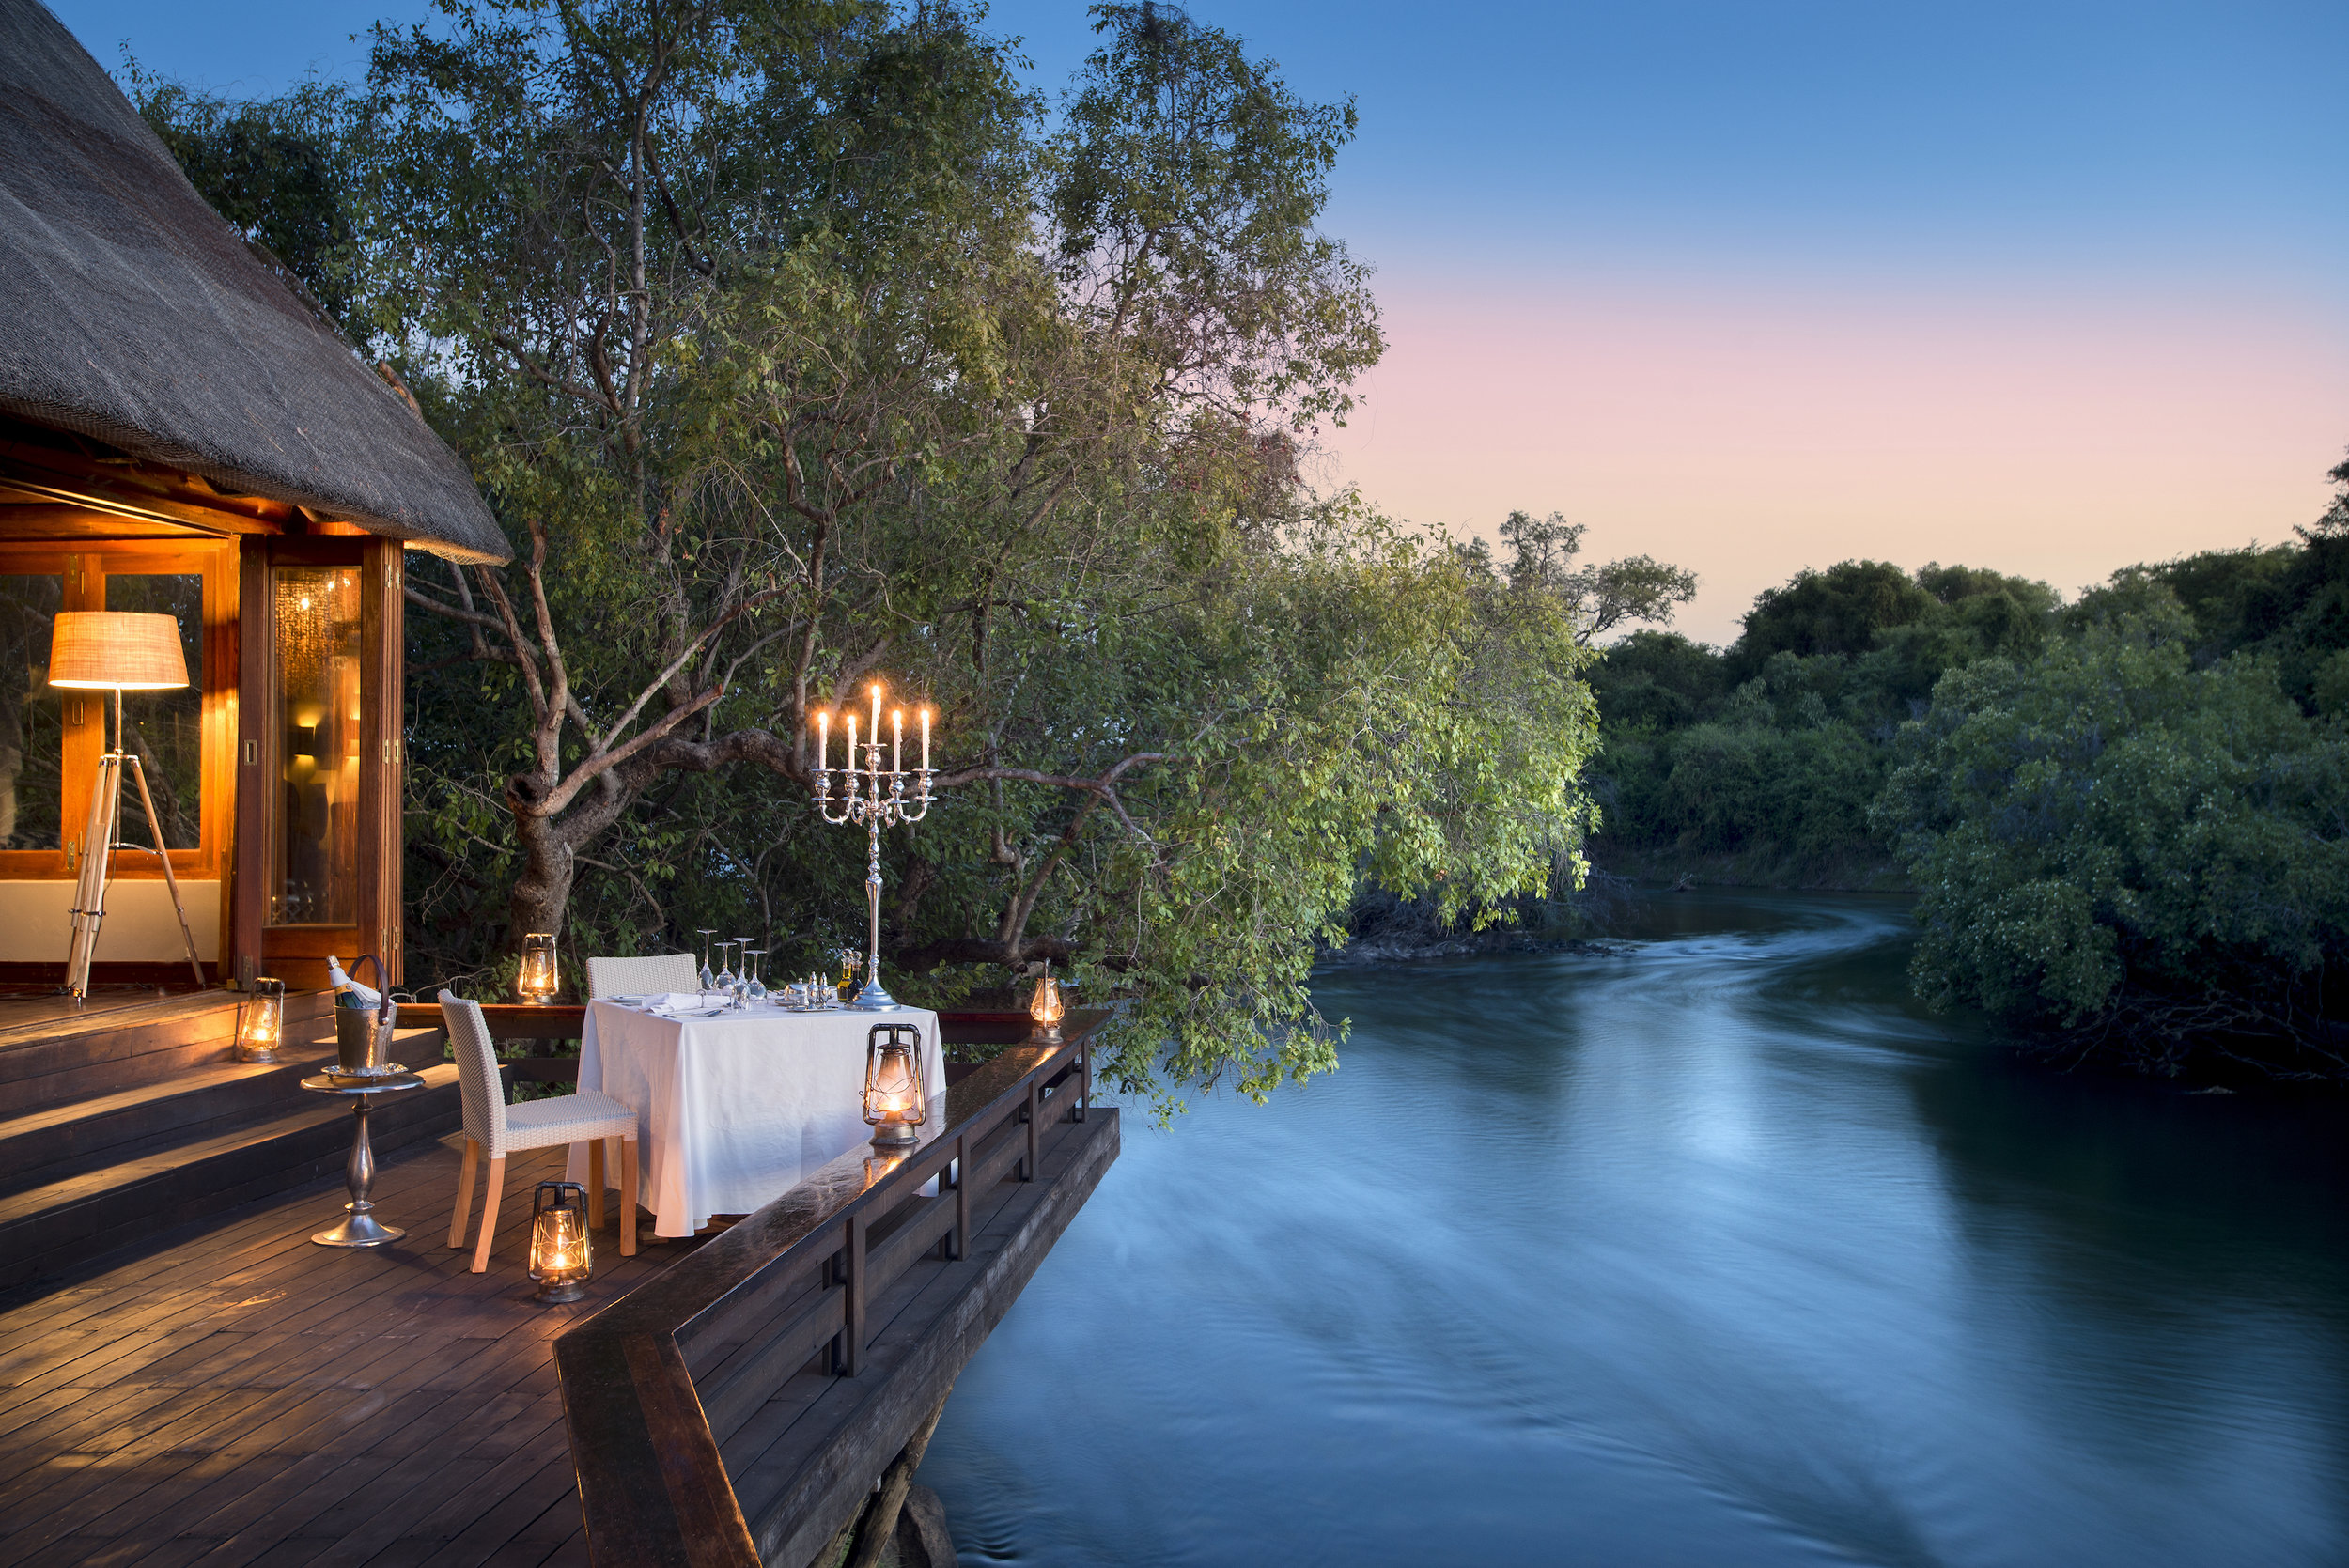 top zambian lodges & camps - zambezi river - royal chundu lodge